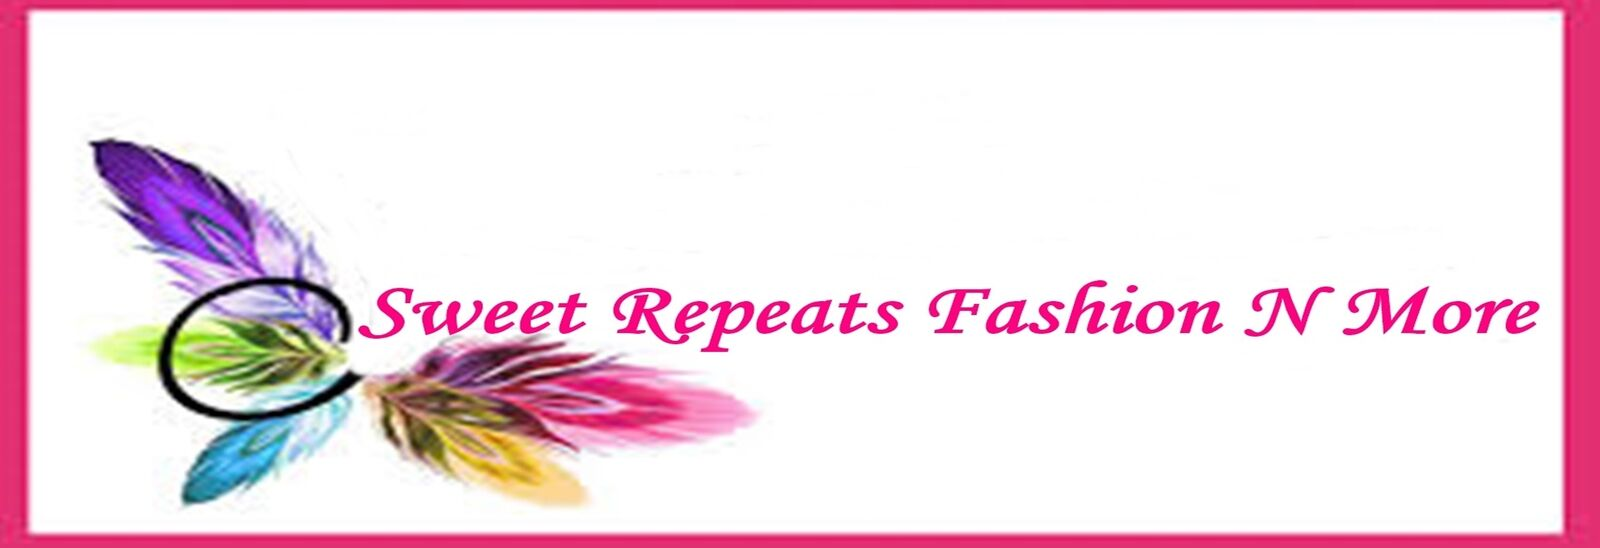 Sweet Repeat Fashion N More